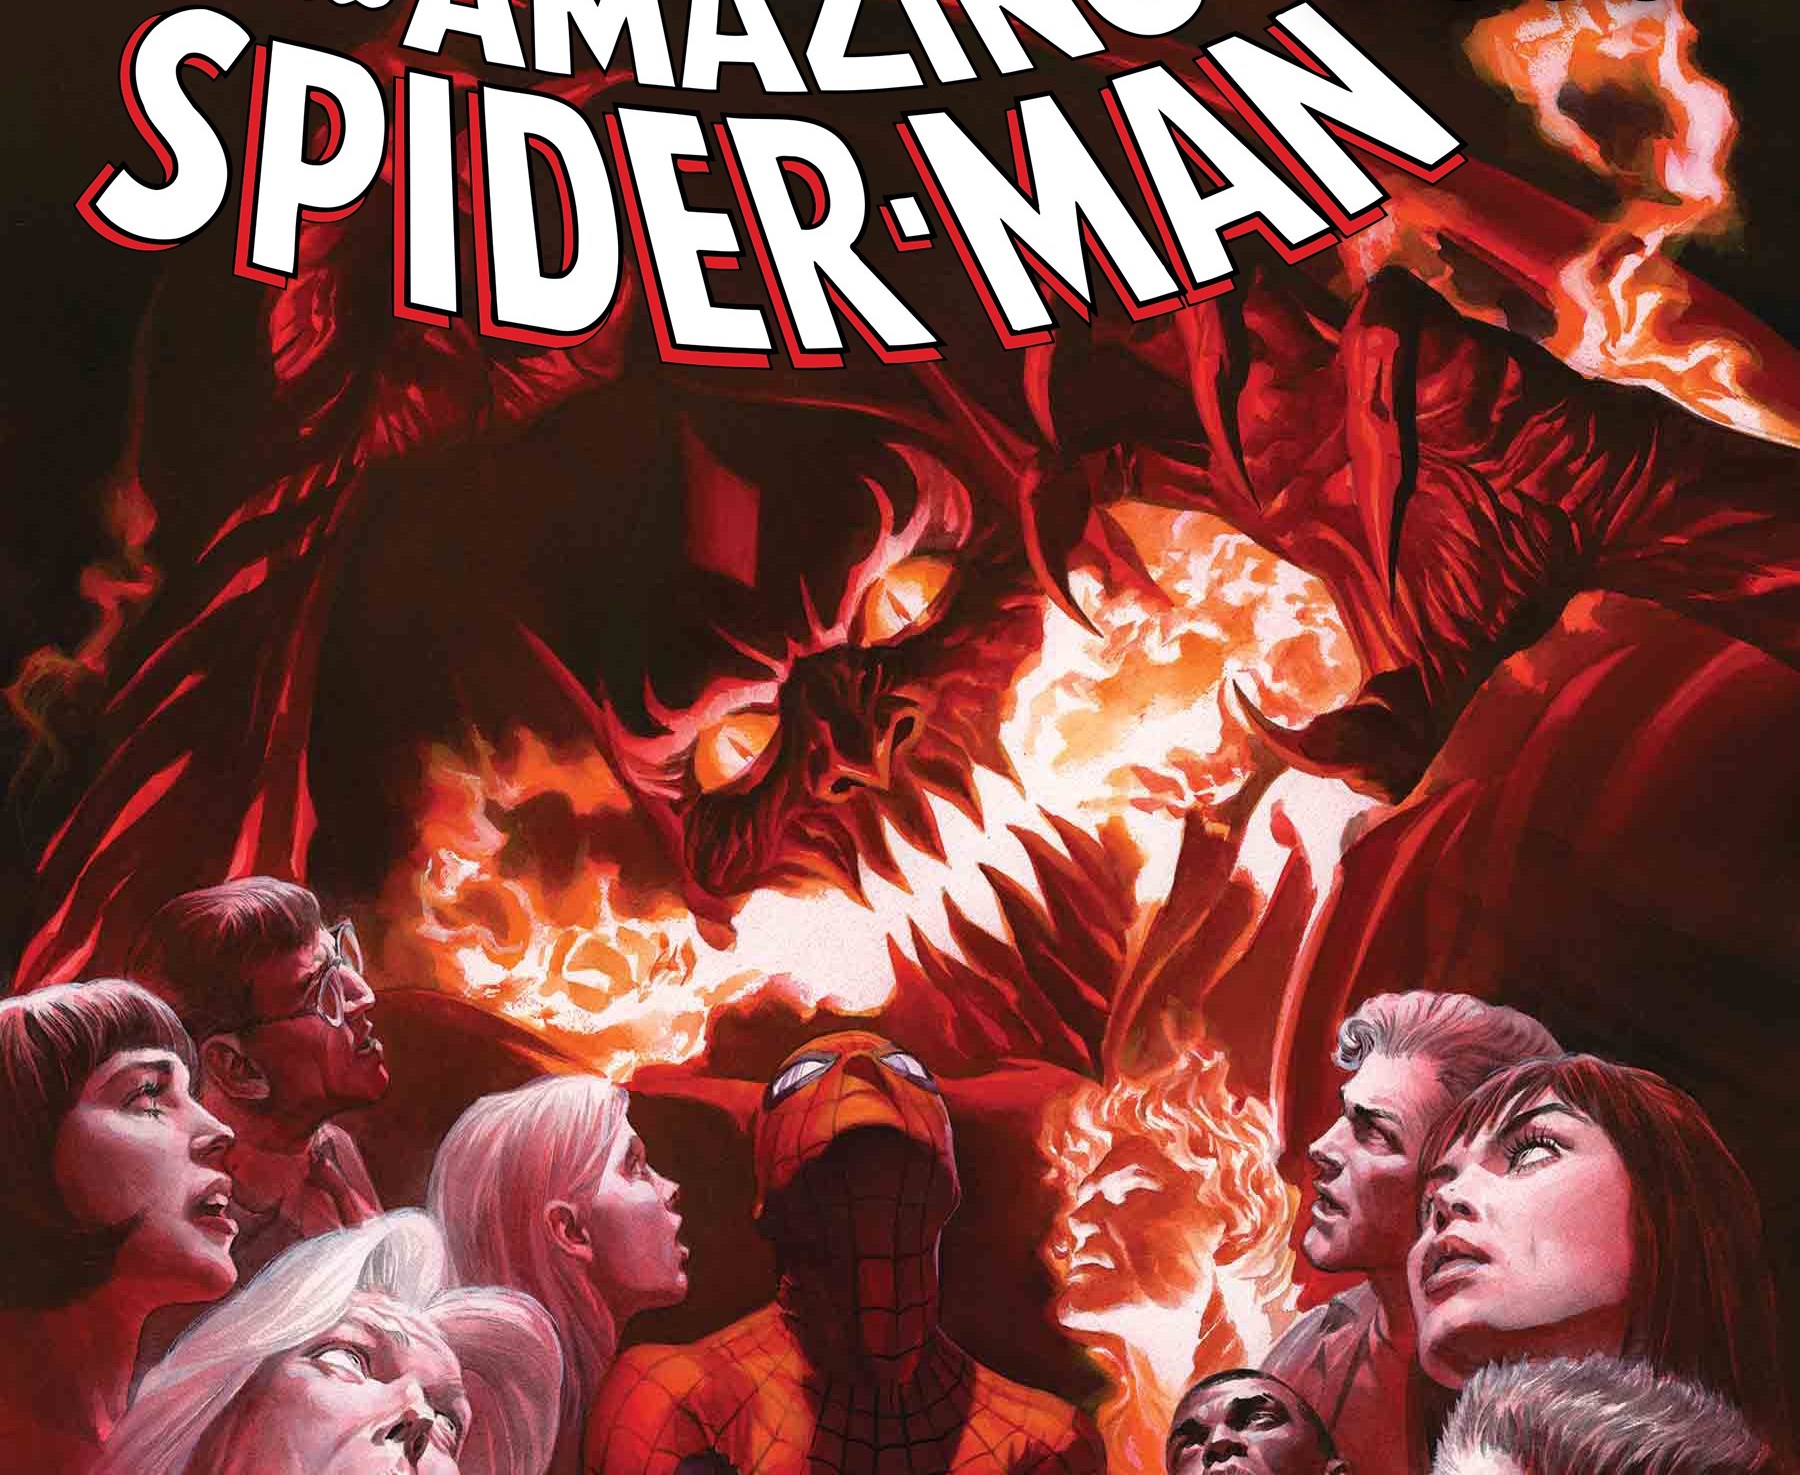 Amazing Spider-Man #799 Review